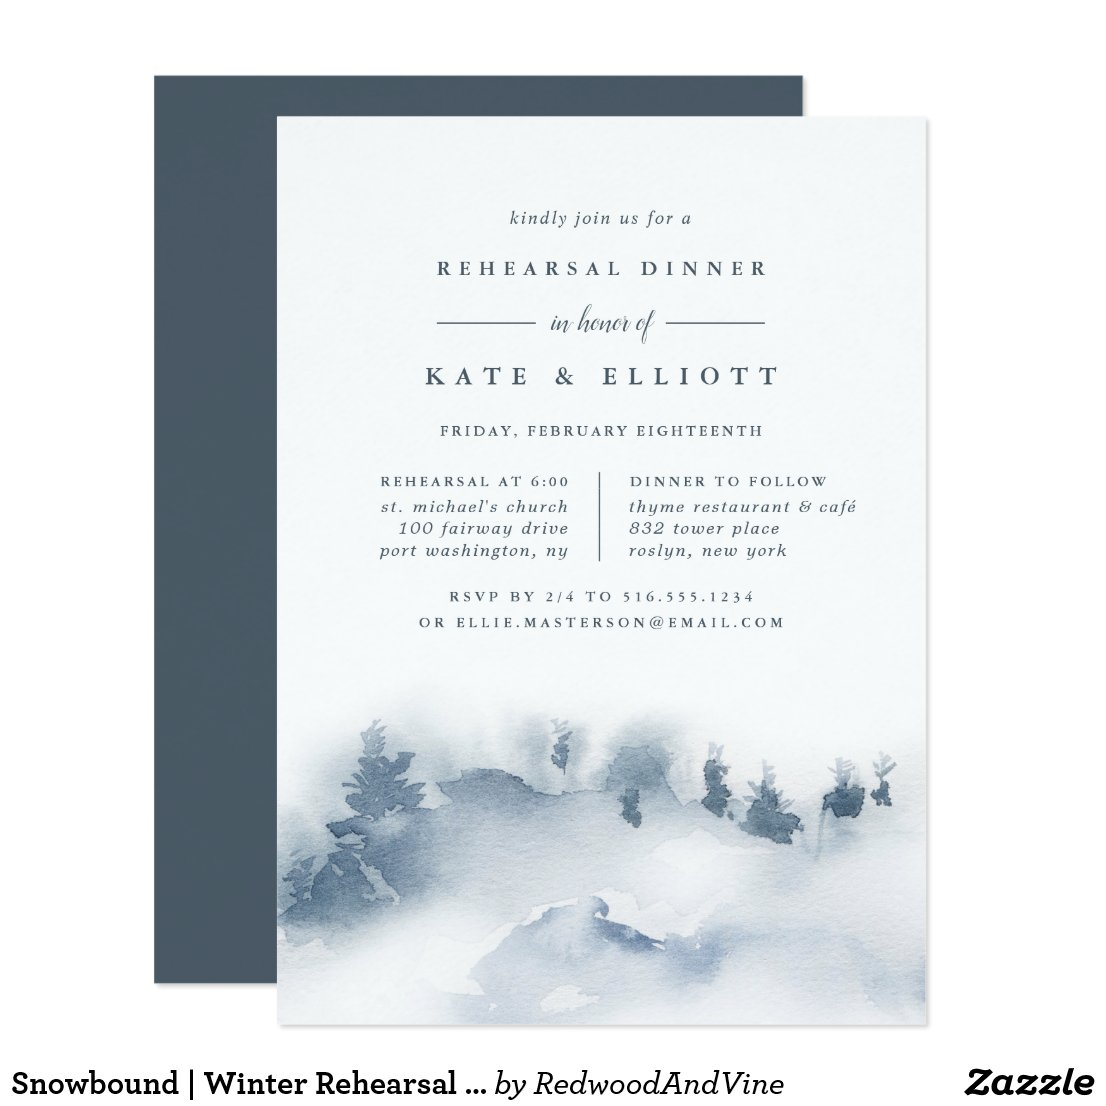 Snowbound | Winter Rehearsal Dinner Invitation